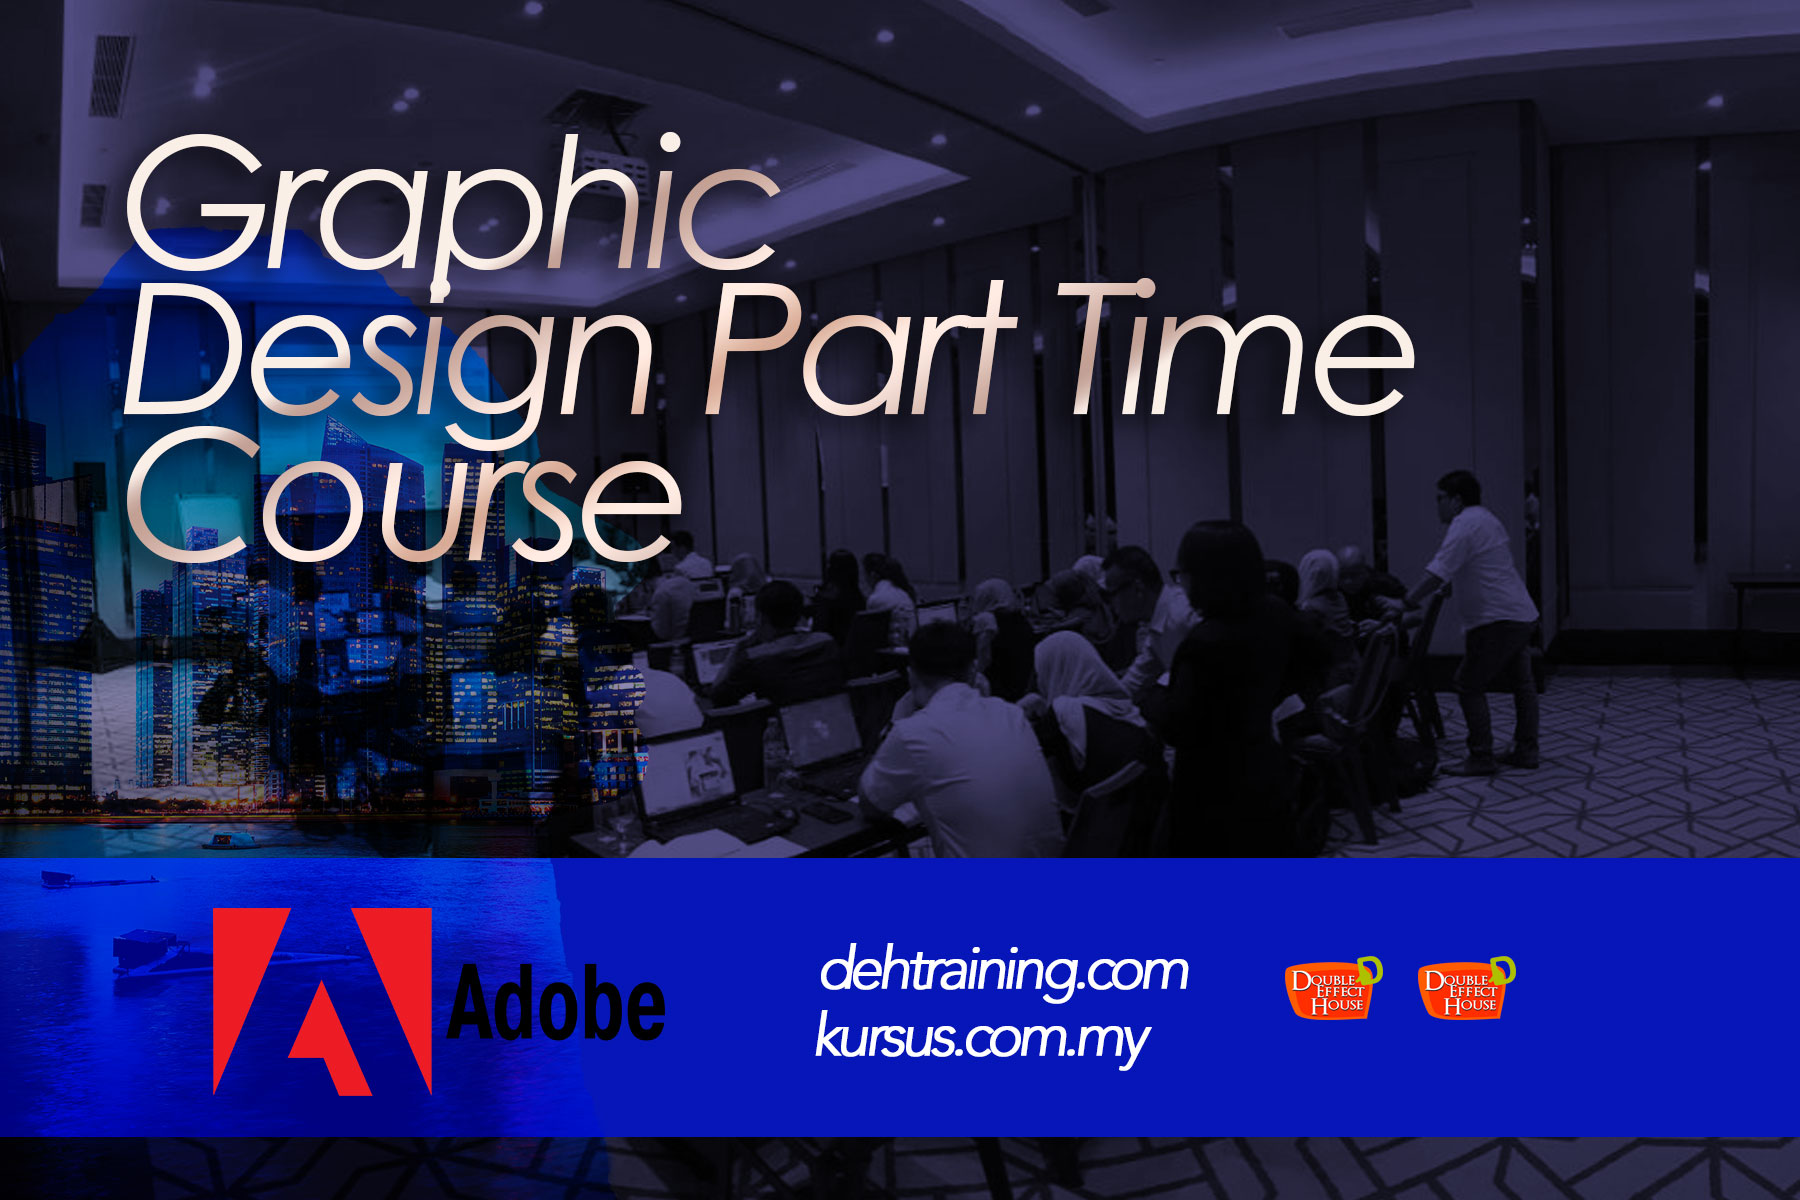 Graphic Design Part Time Course